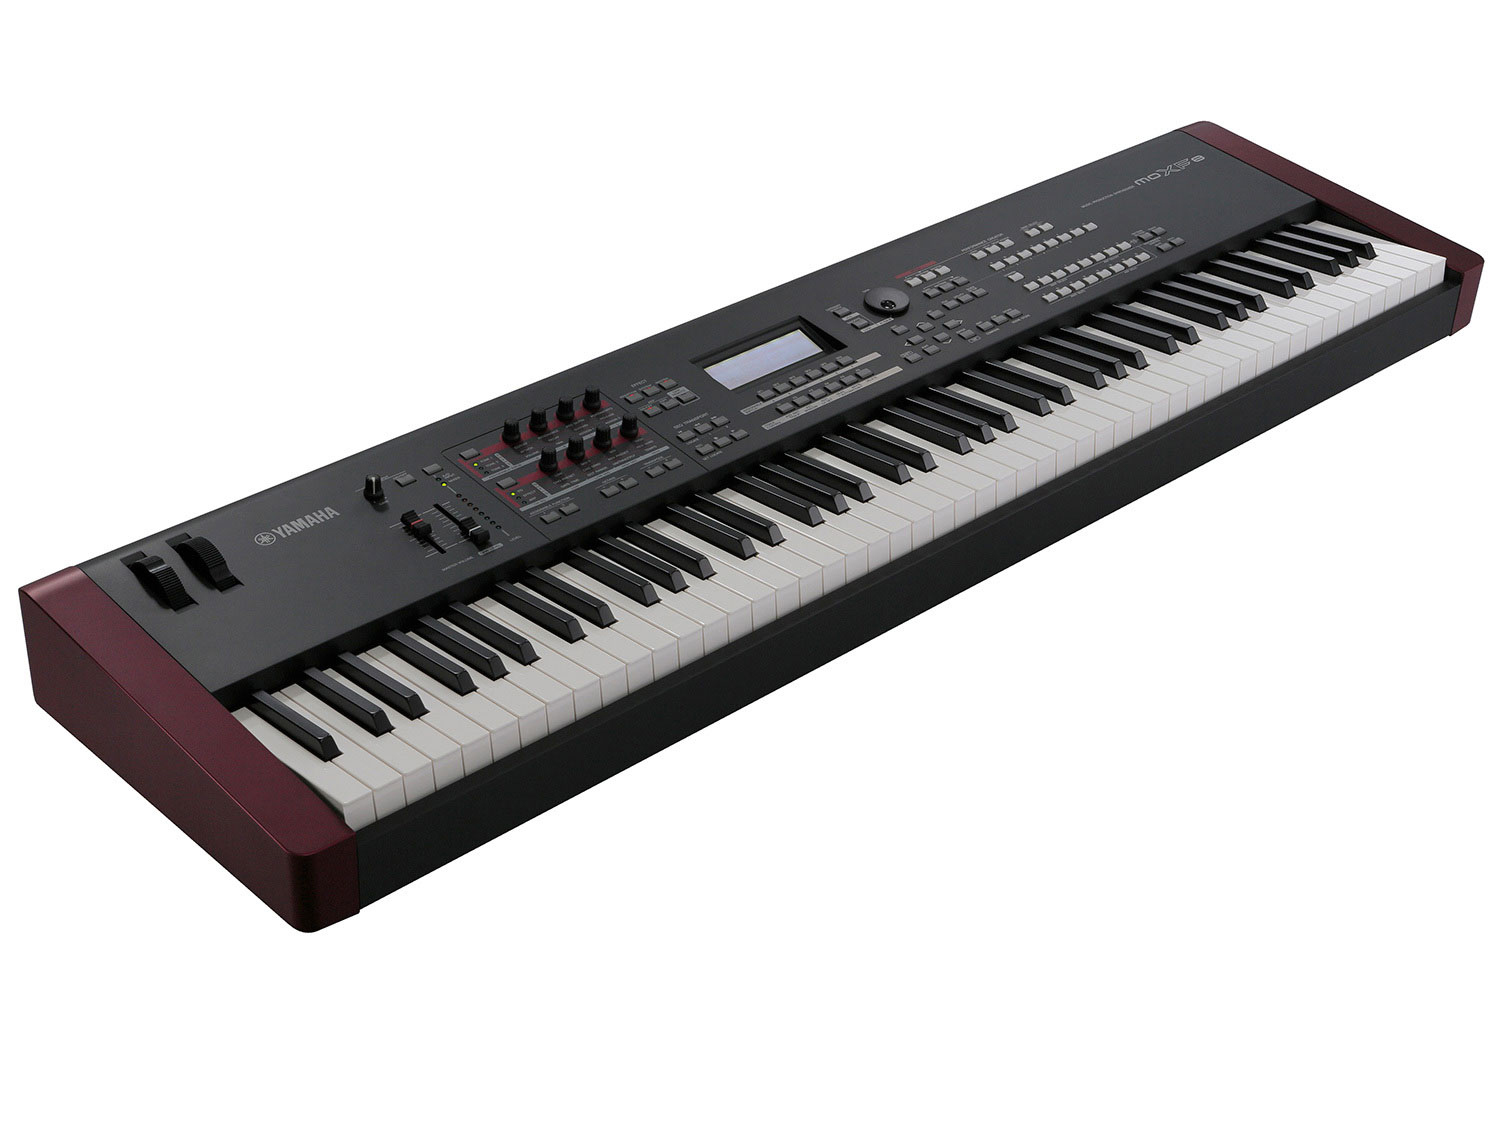 yamaha moxf8 88 weighted key synthesizer workstation. Black Bedroom Furniture Sets. Home Design Ideas